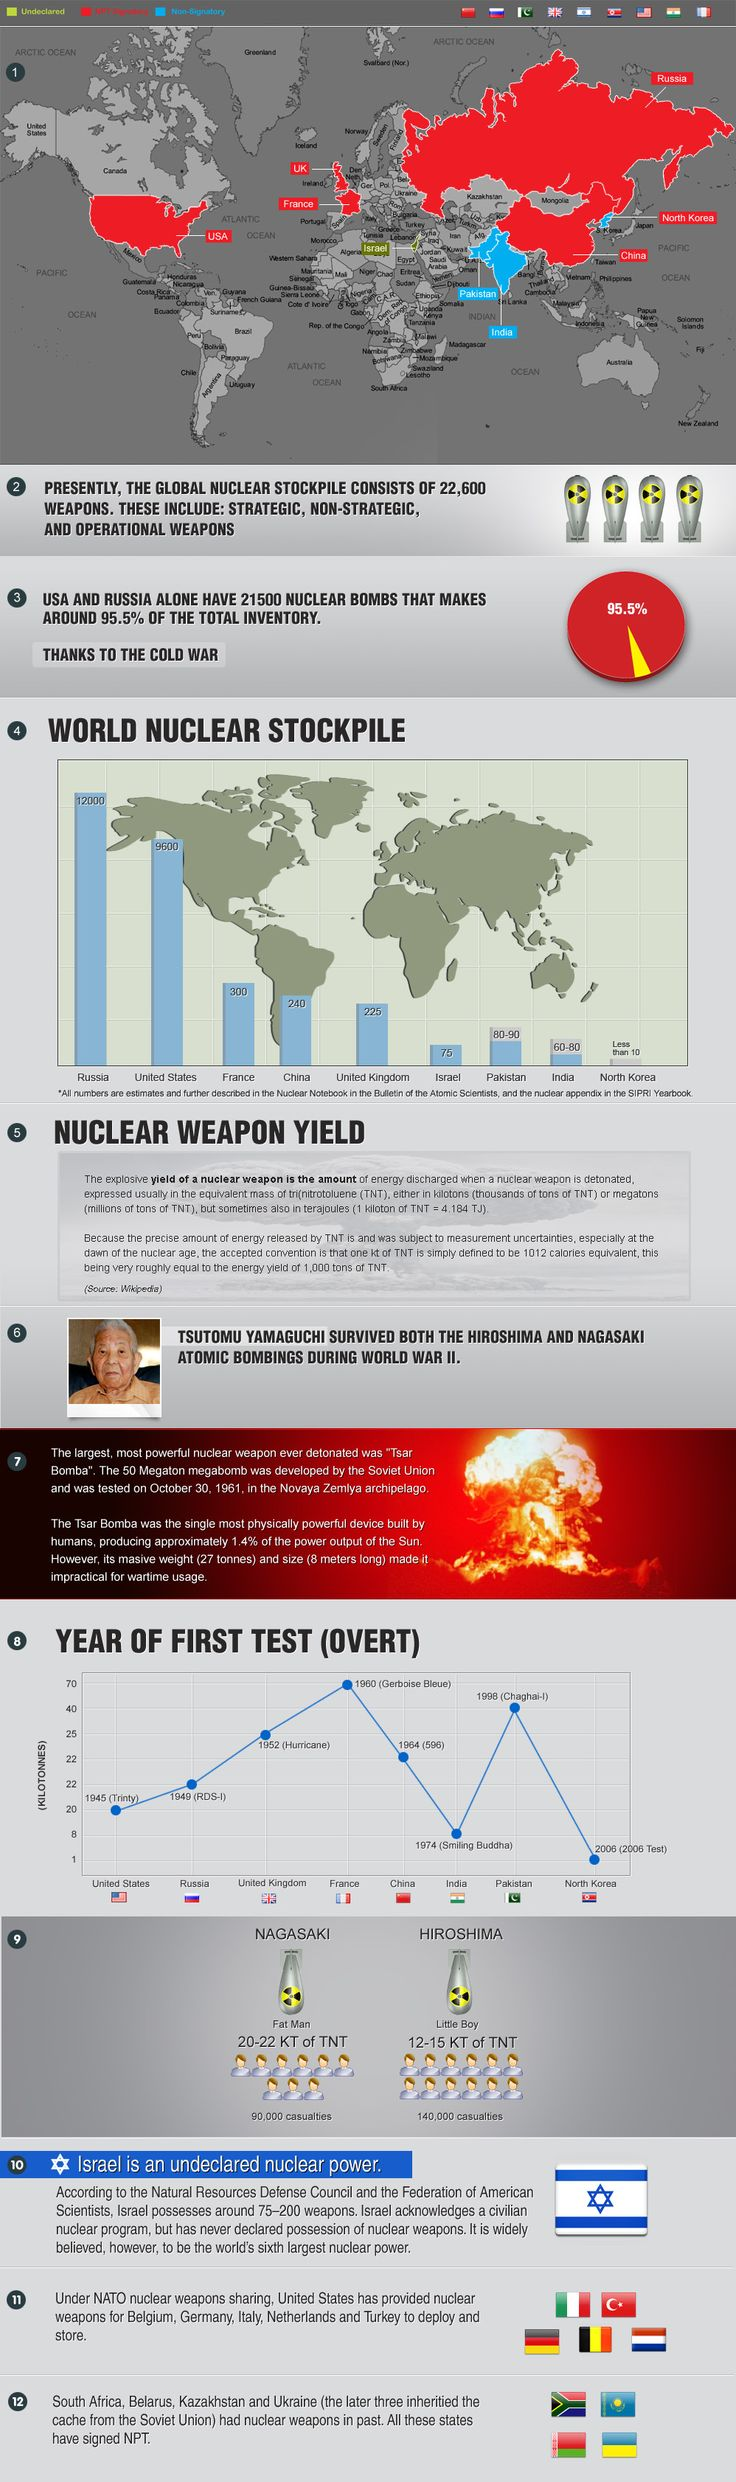 During the Cold War the U.S. and Russia stockpiled nuclear weapons which today still amount to nearly 95.5% of the world's nuclear weapons.  Other cou